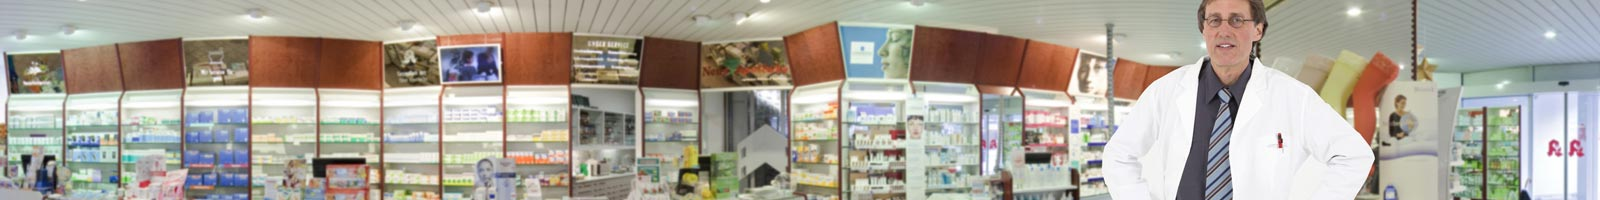 illustration de Pharmacie